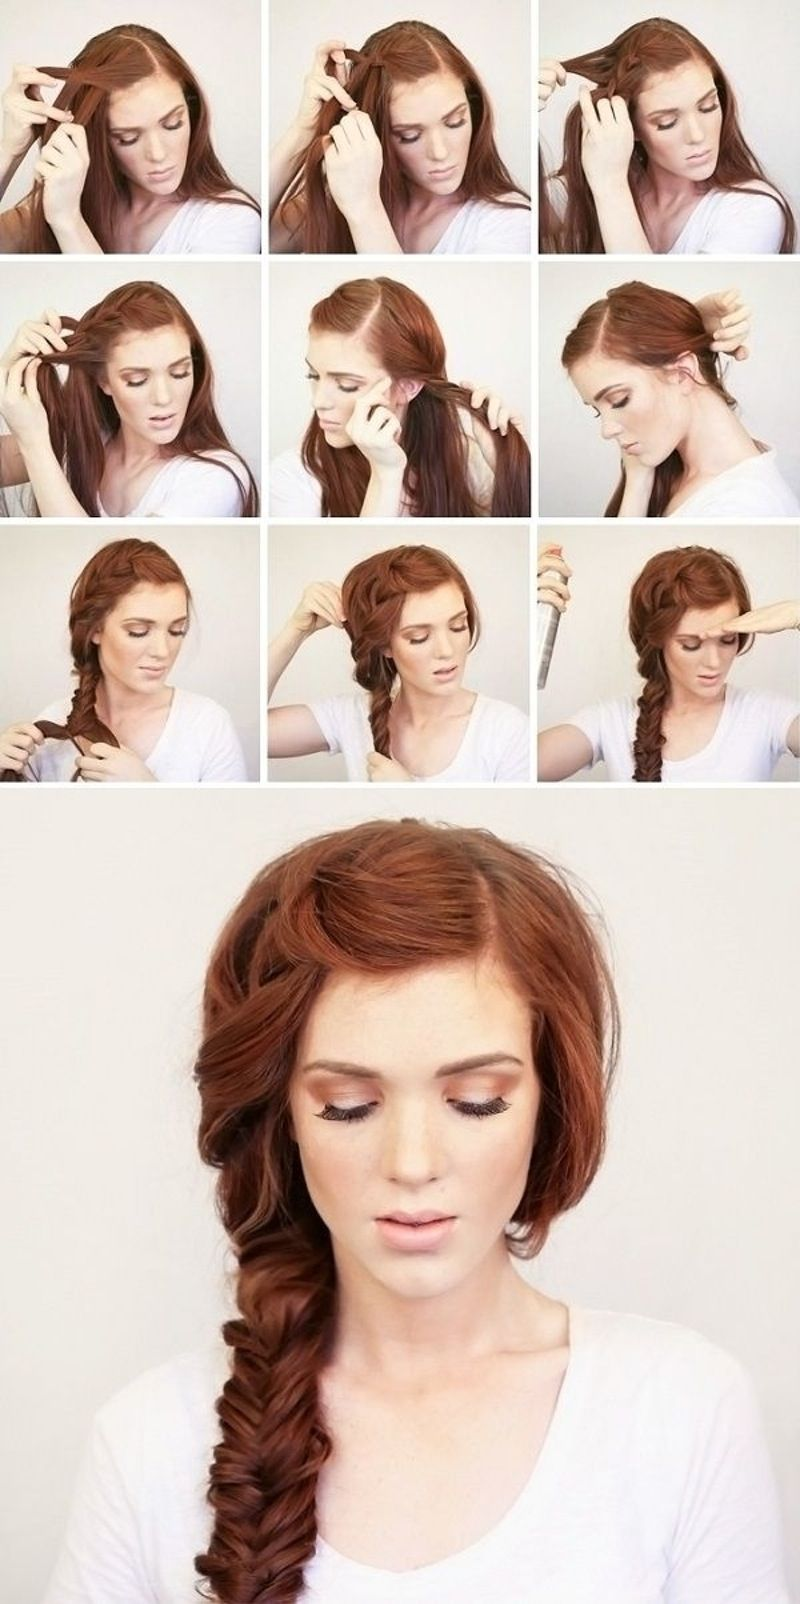 4. this epic side #braid - 17 gorgeous #hairstyles for lazy